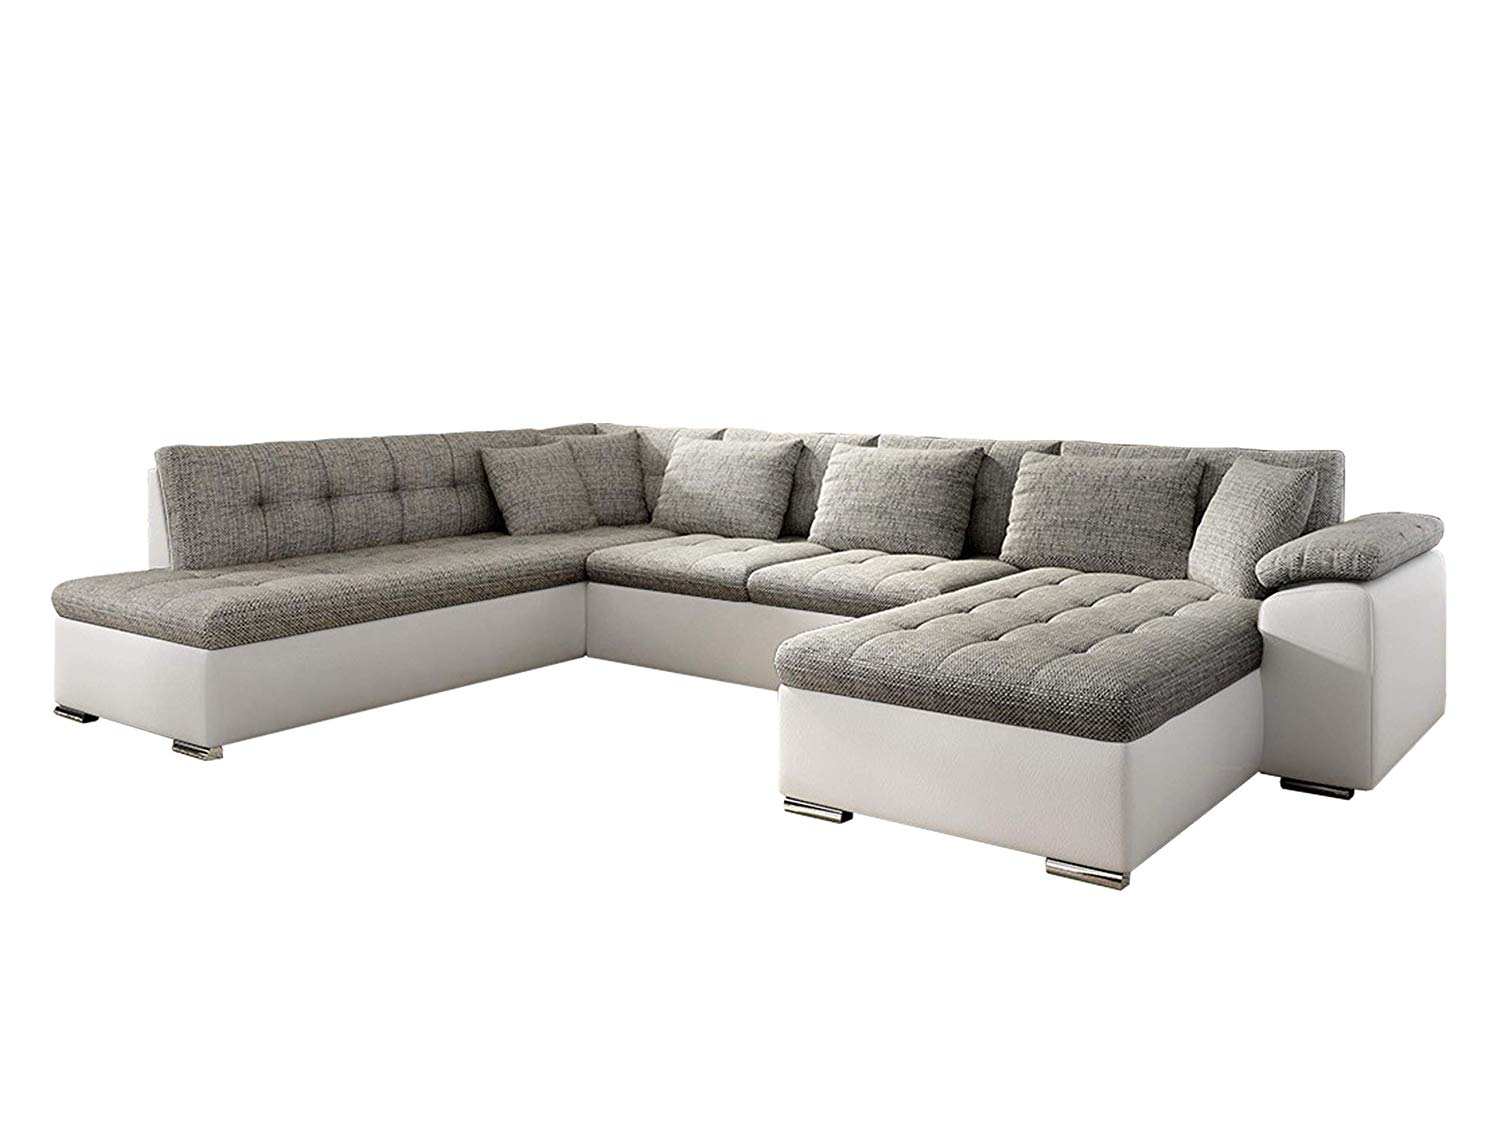 sofa dublin xxl weiss grau links. Black Bedroom Furniture Sets. Home Design Ideas